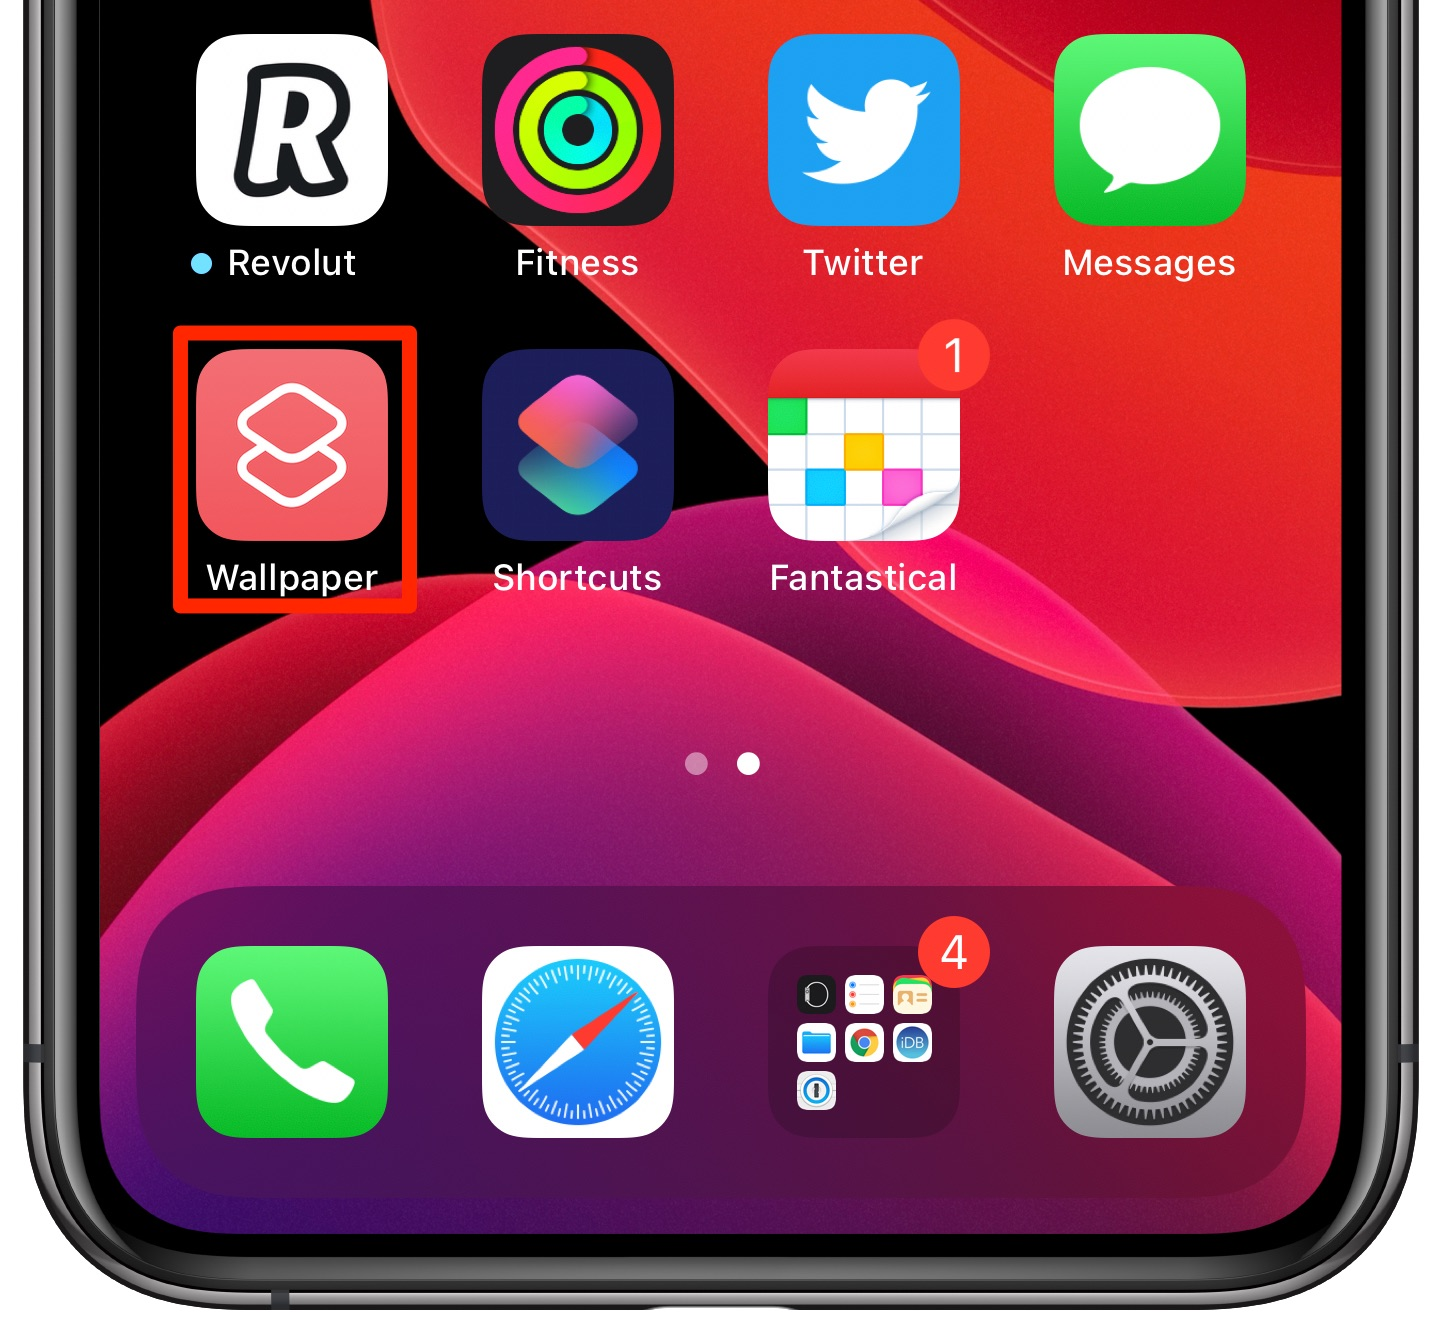 change iPhone wallpaper automatically - the Wallpaper script icon on the Home Screen